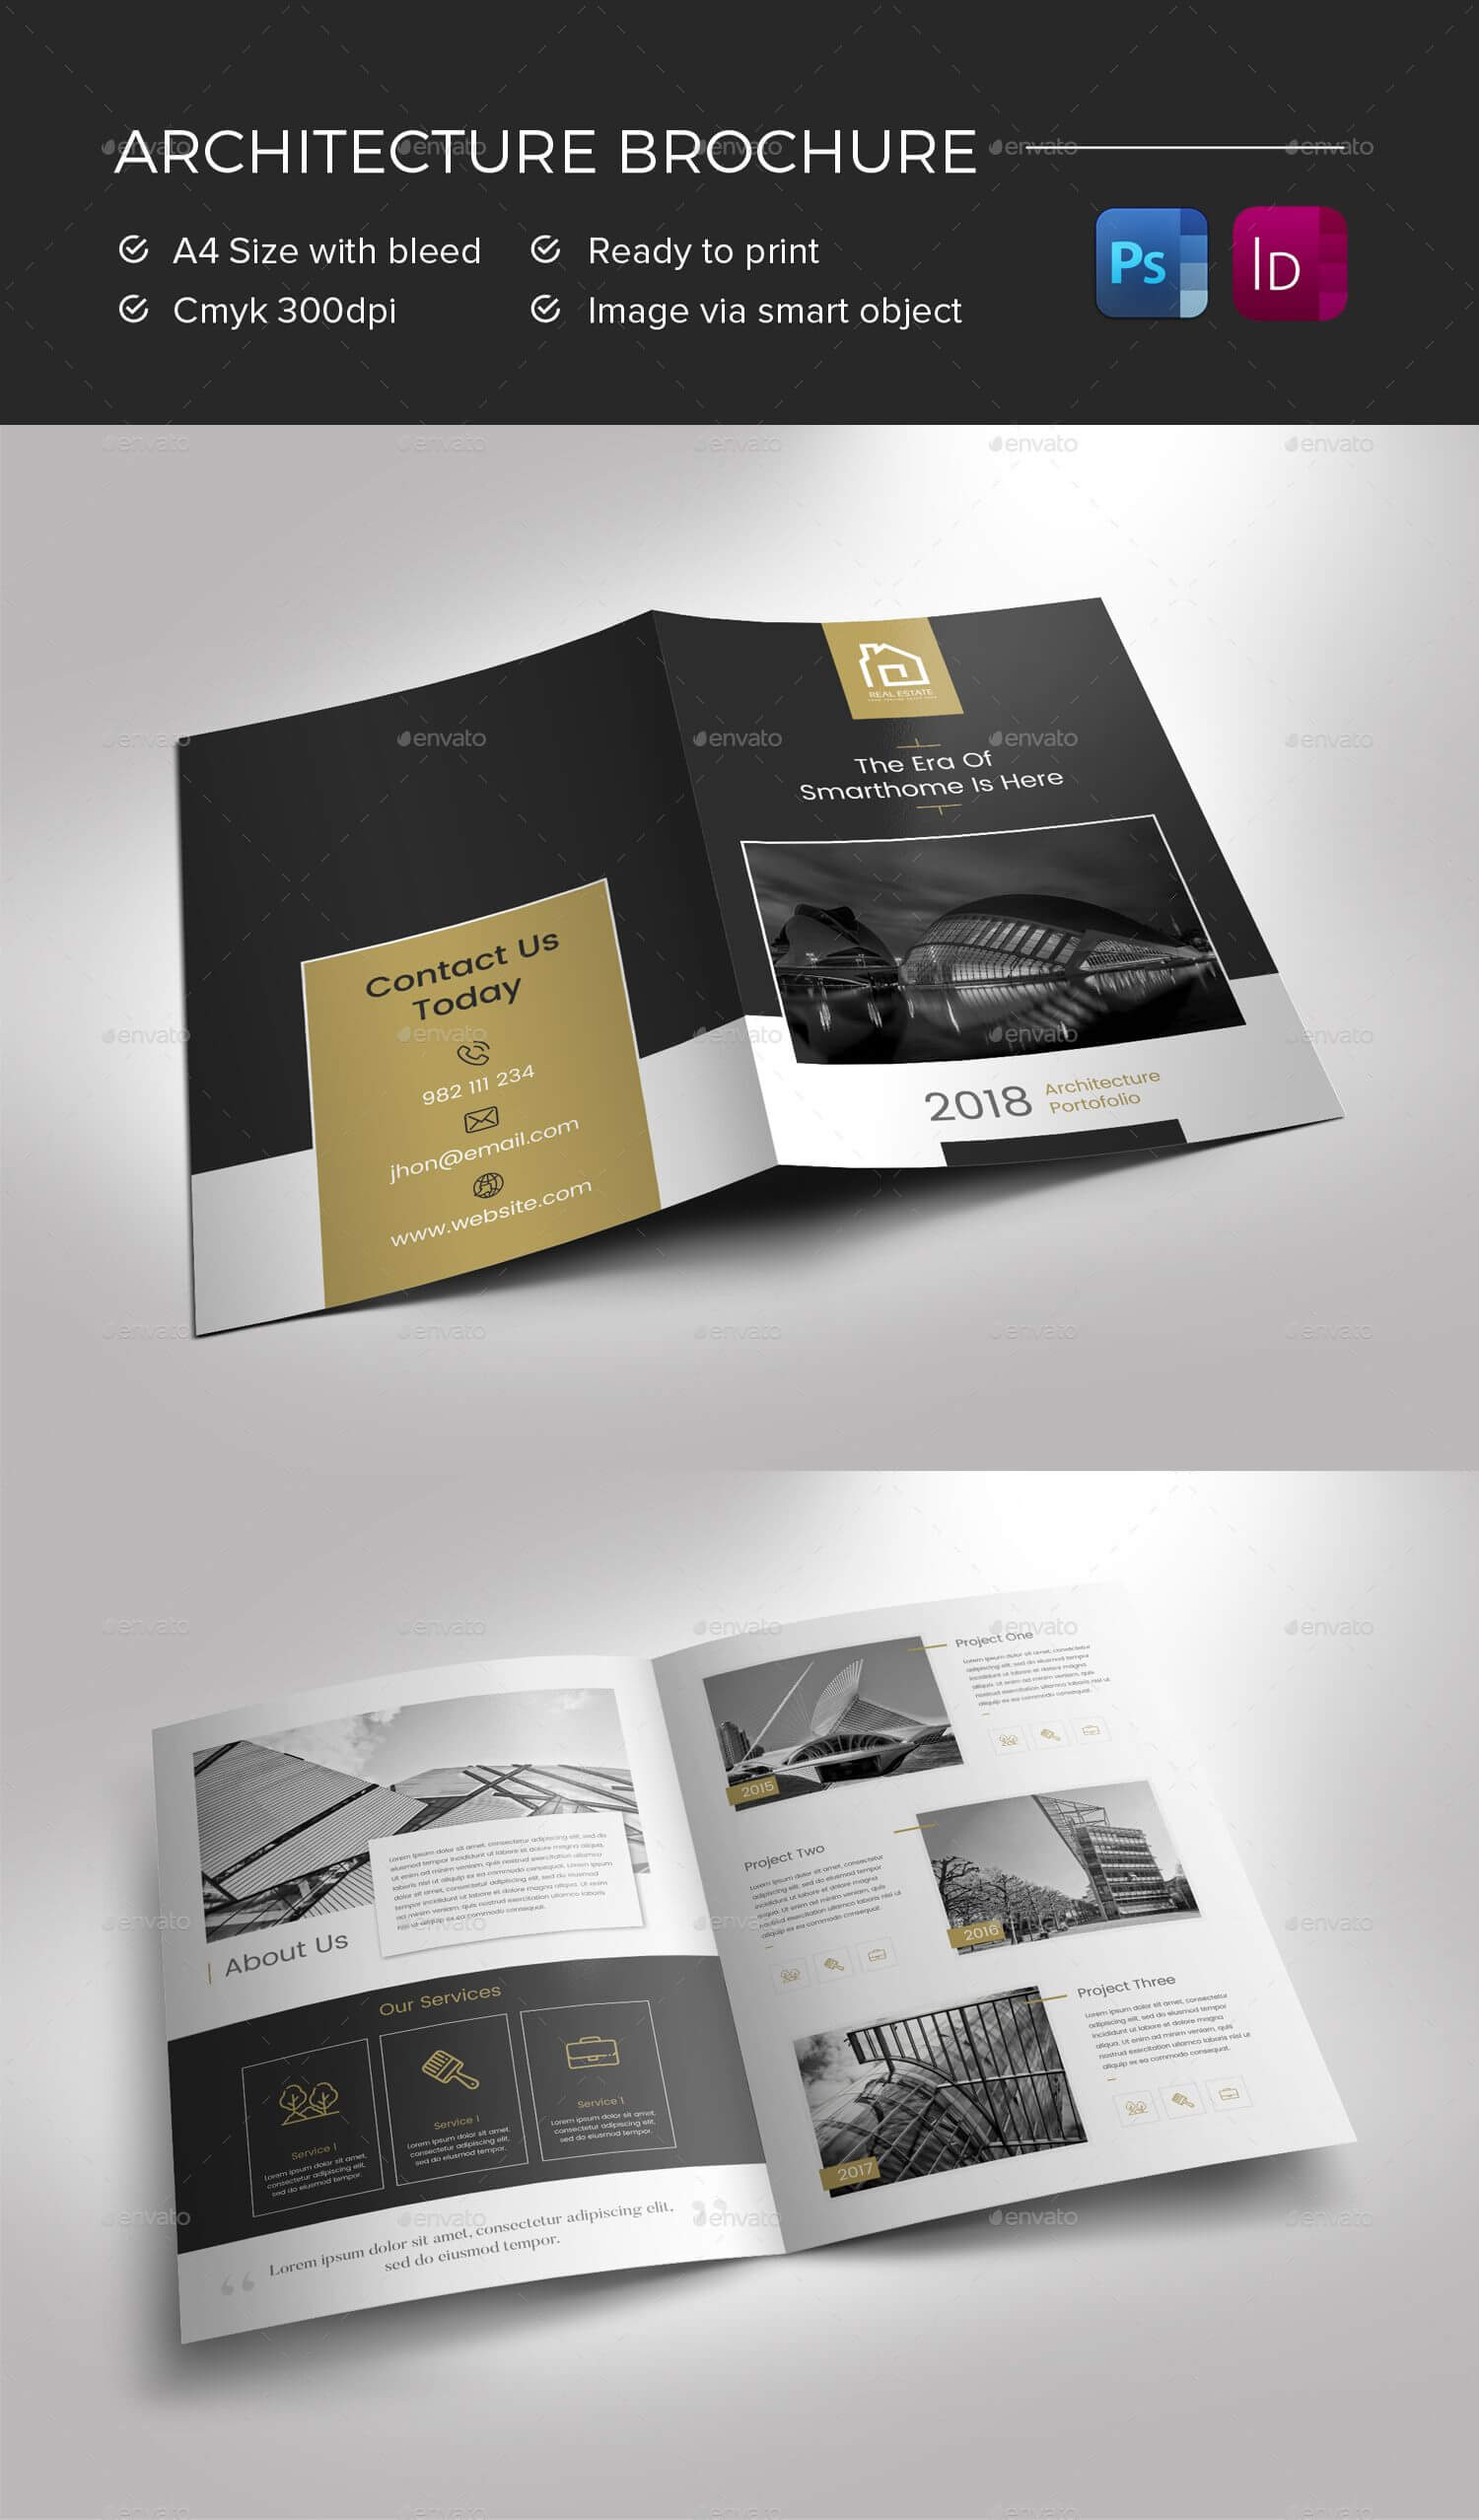 Architecture Brochure Preview - Graphicriver | Brochure With Regard To Architecture Brochure Templates Free Download